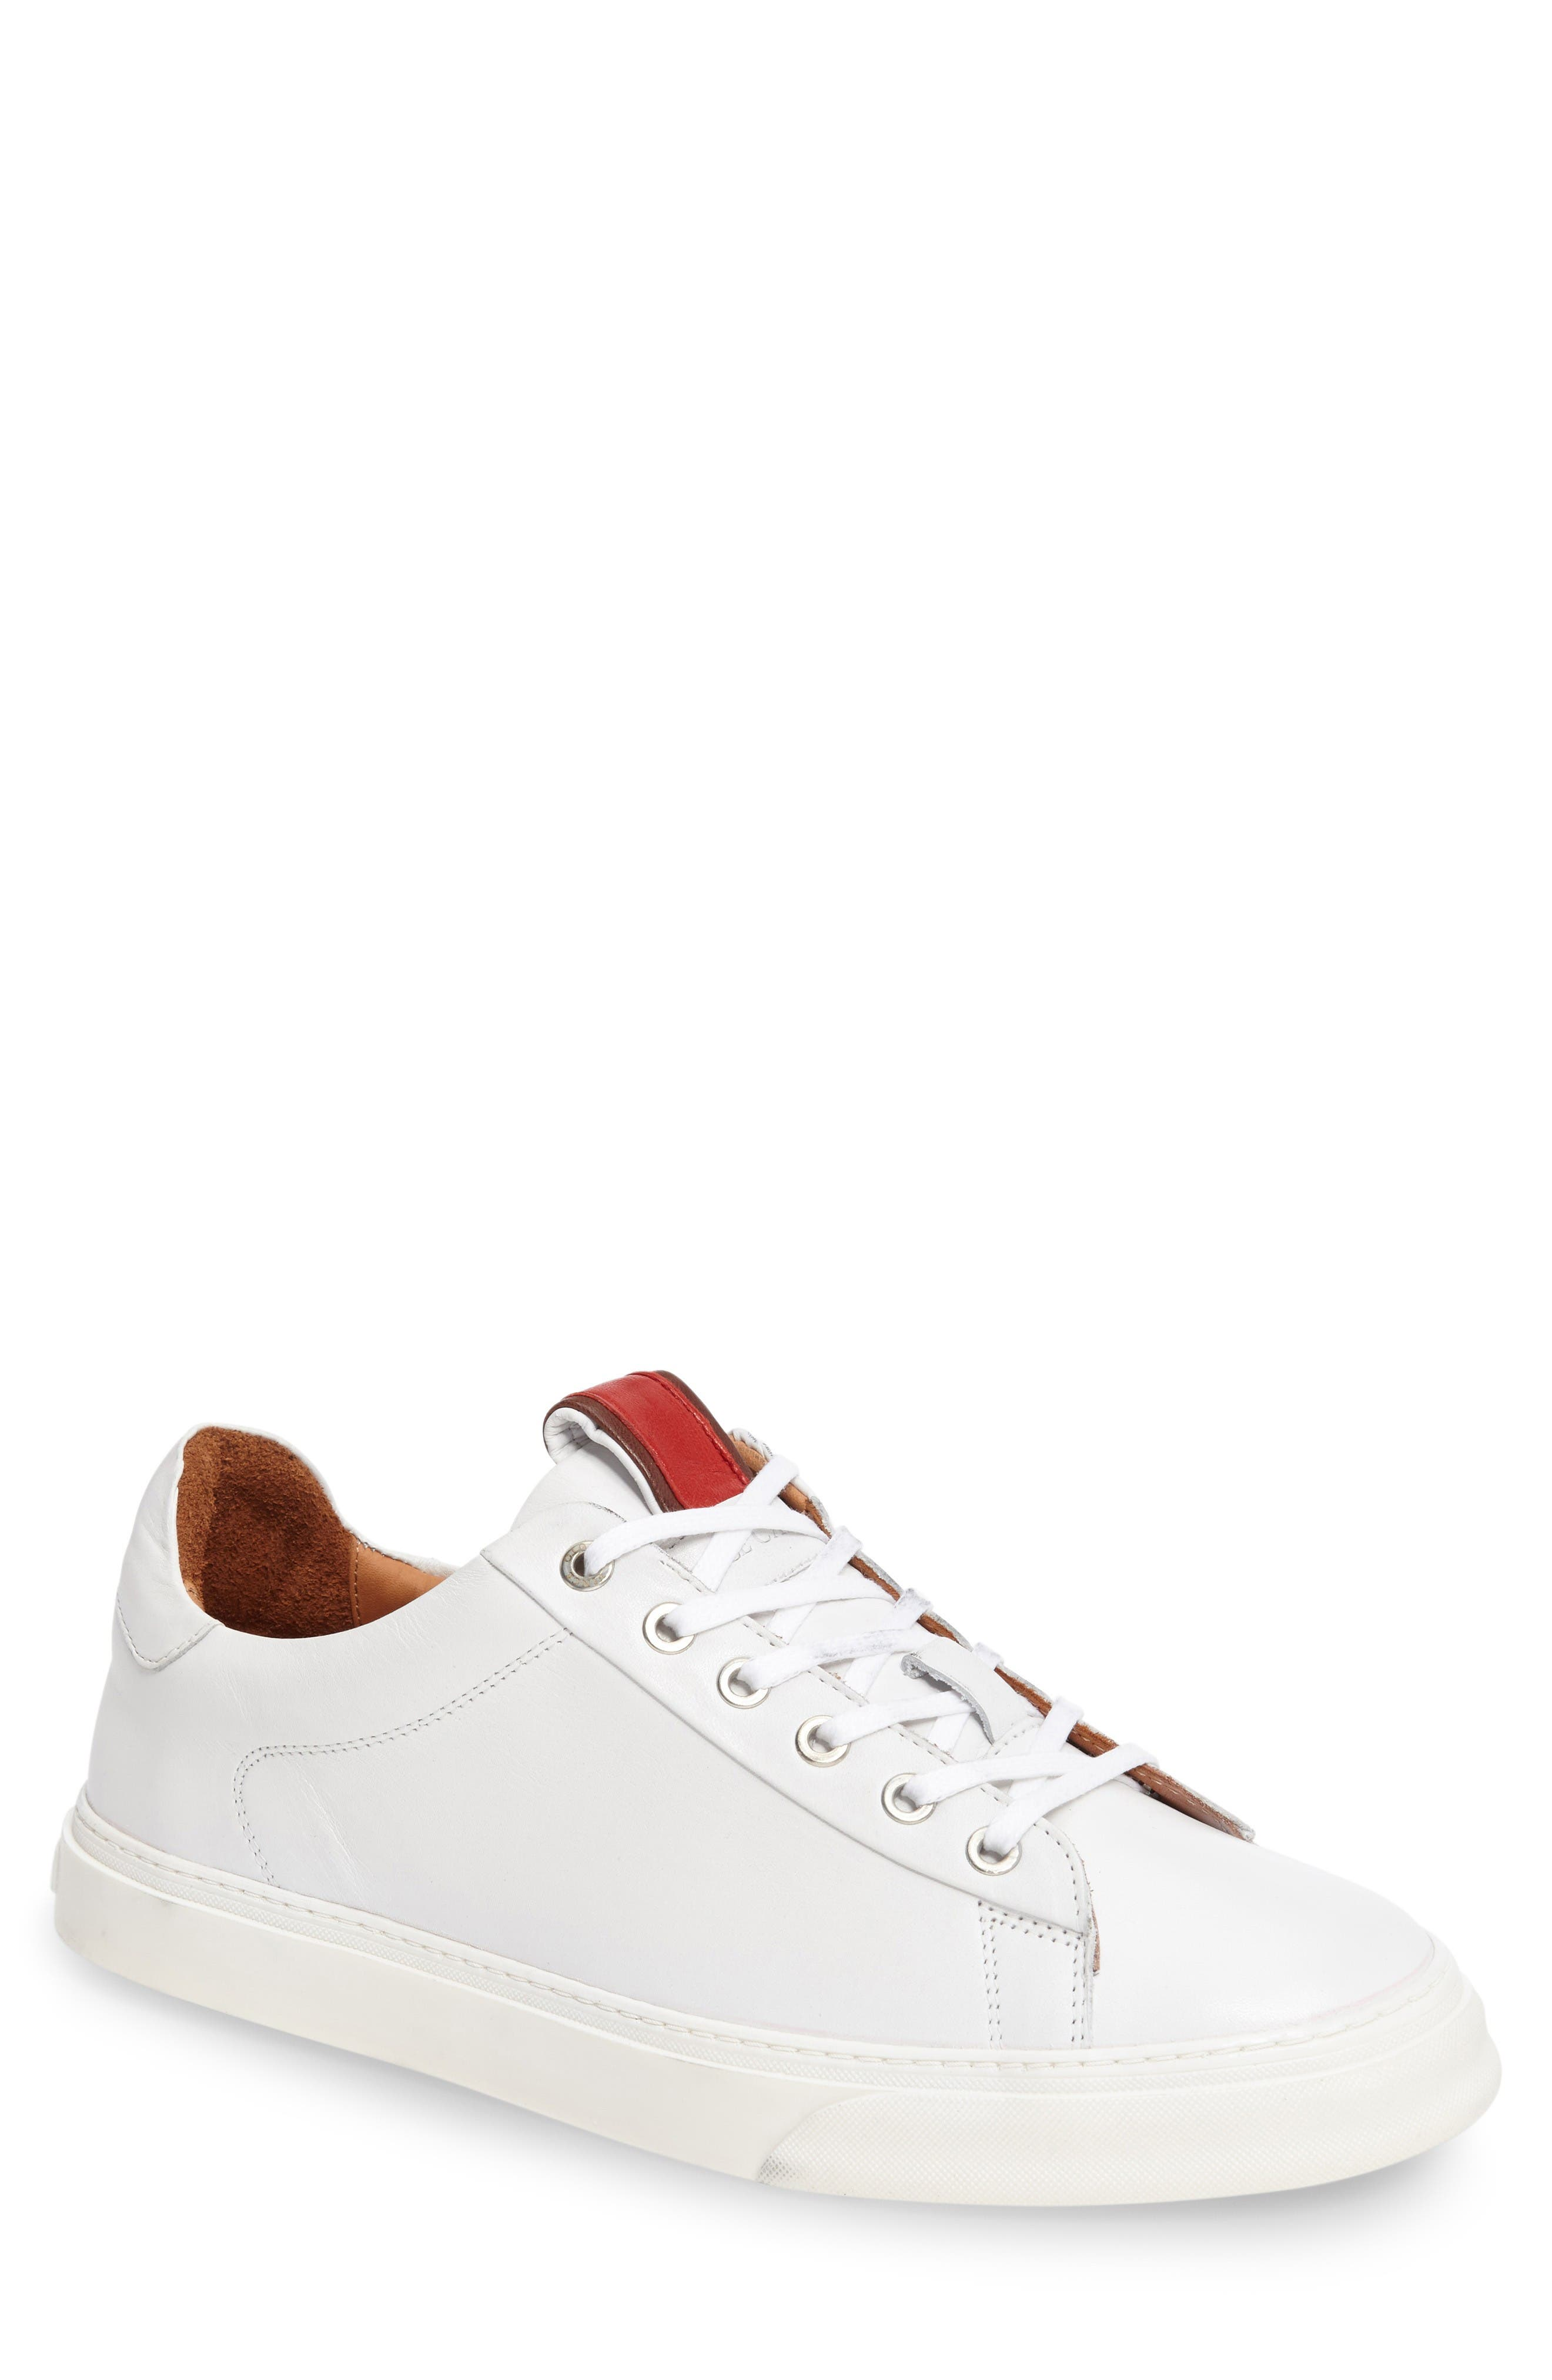 Quin Sneaker,                             Main thumbnail 1, color,                             White Leather